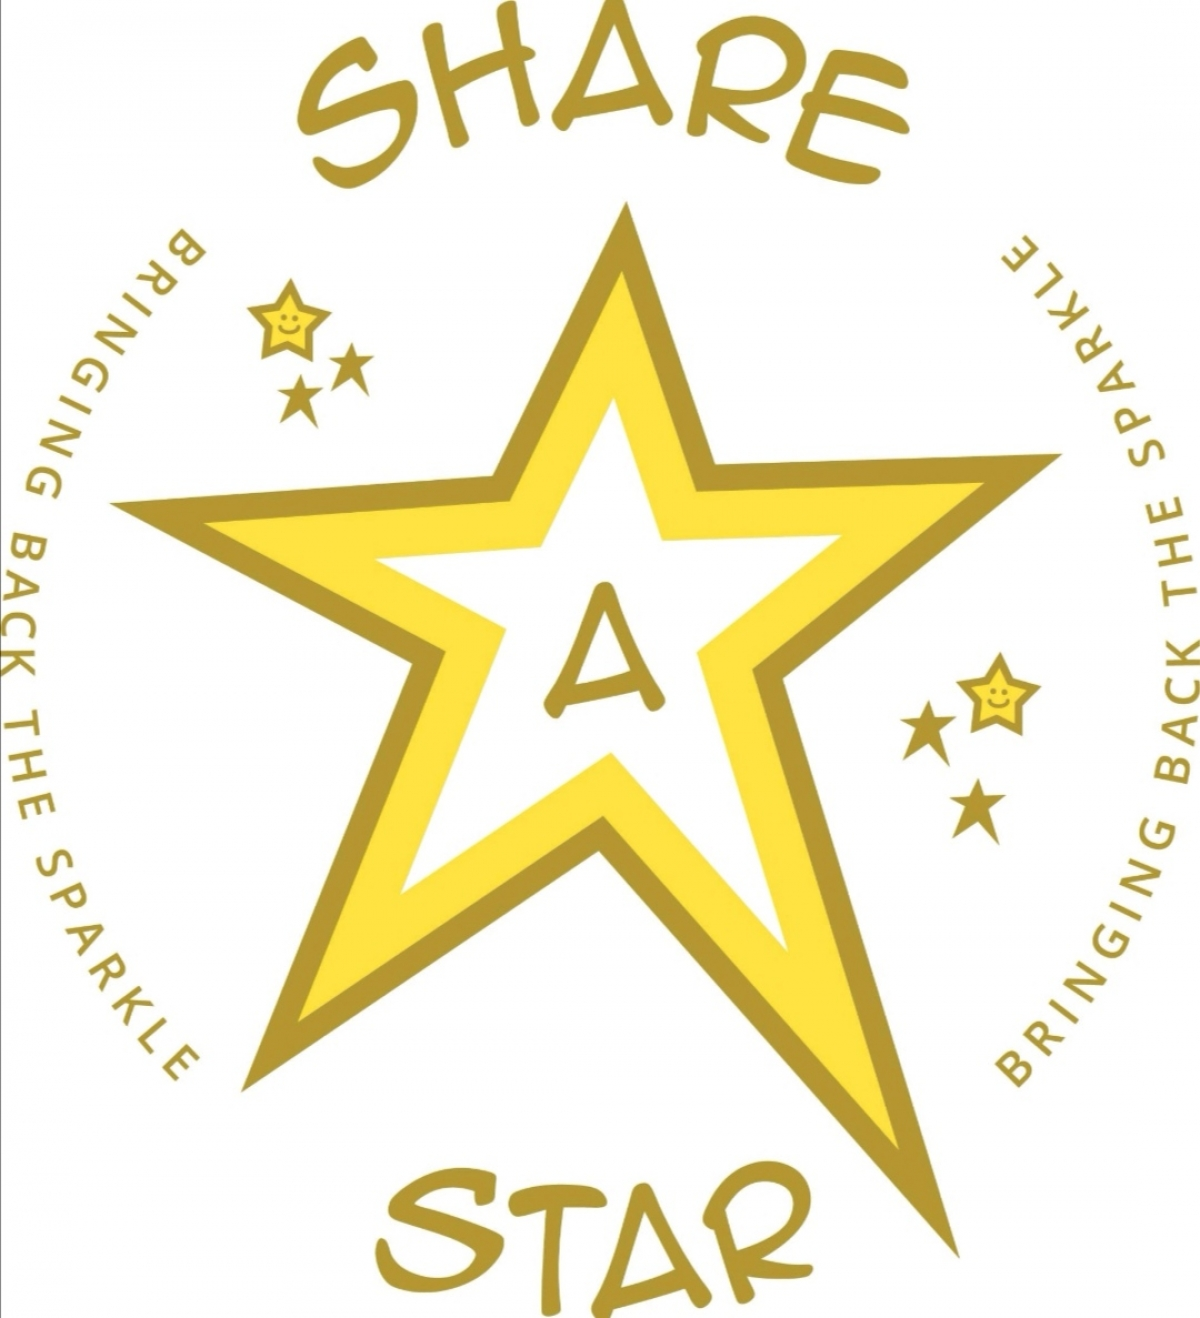 Share A Star eCards